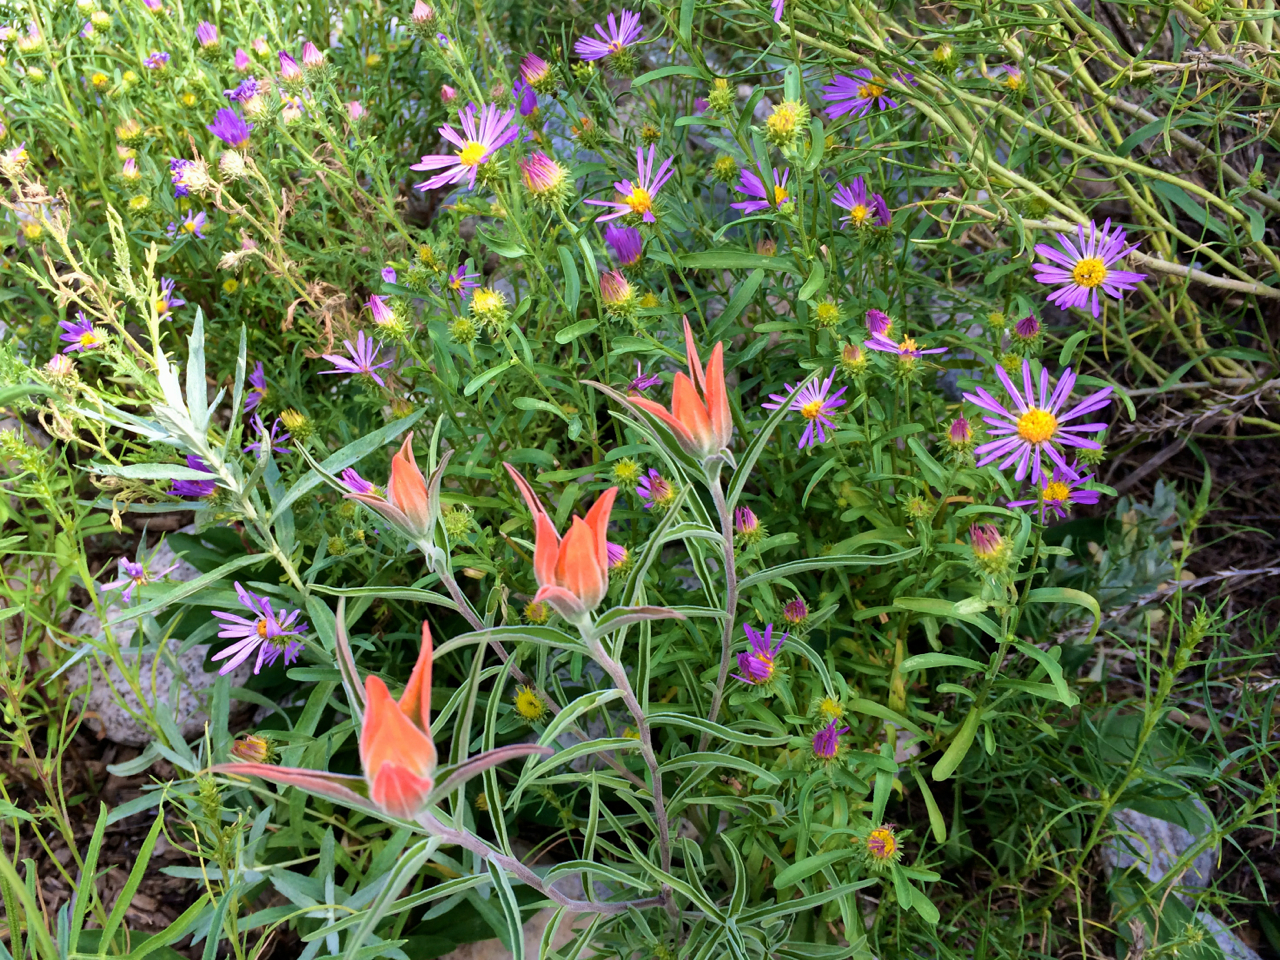 Wholeleaf Indian Paintbrush and Showy Fleabane in Monarch Spur Park.